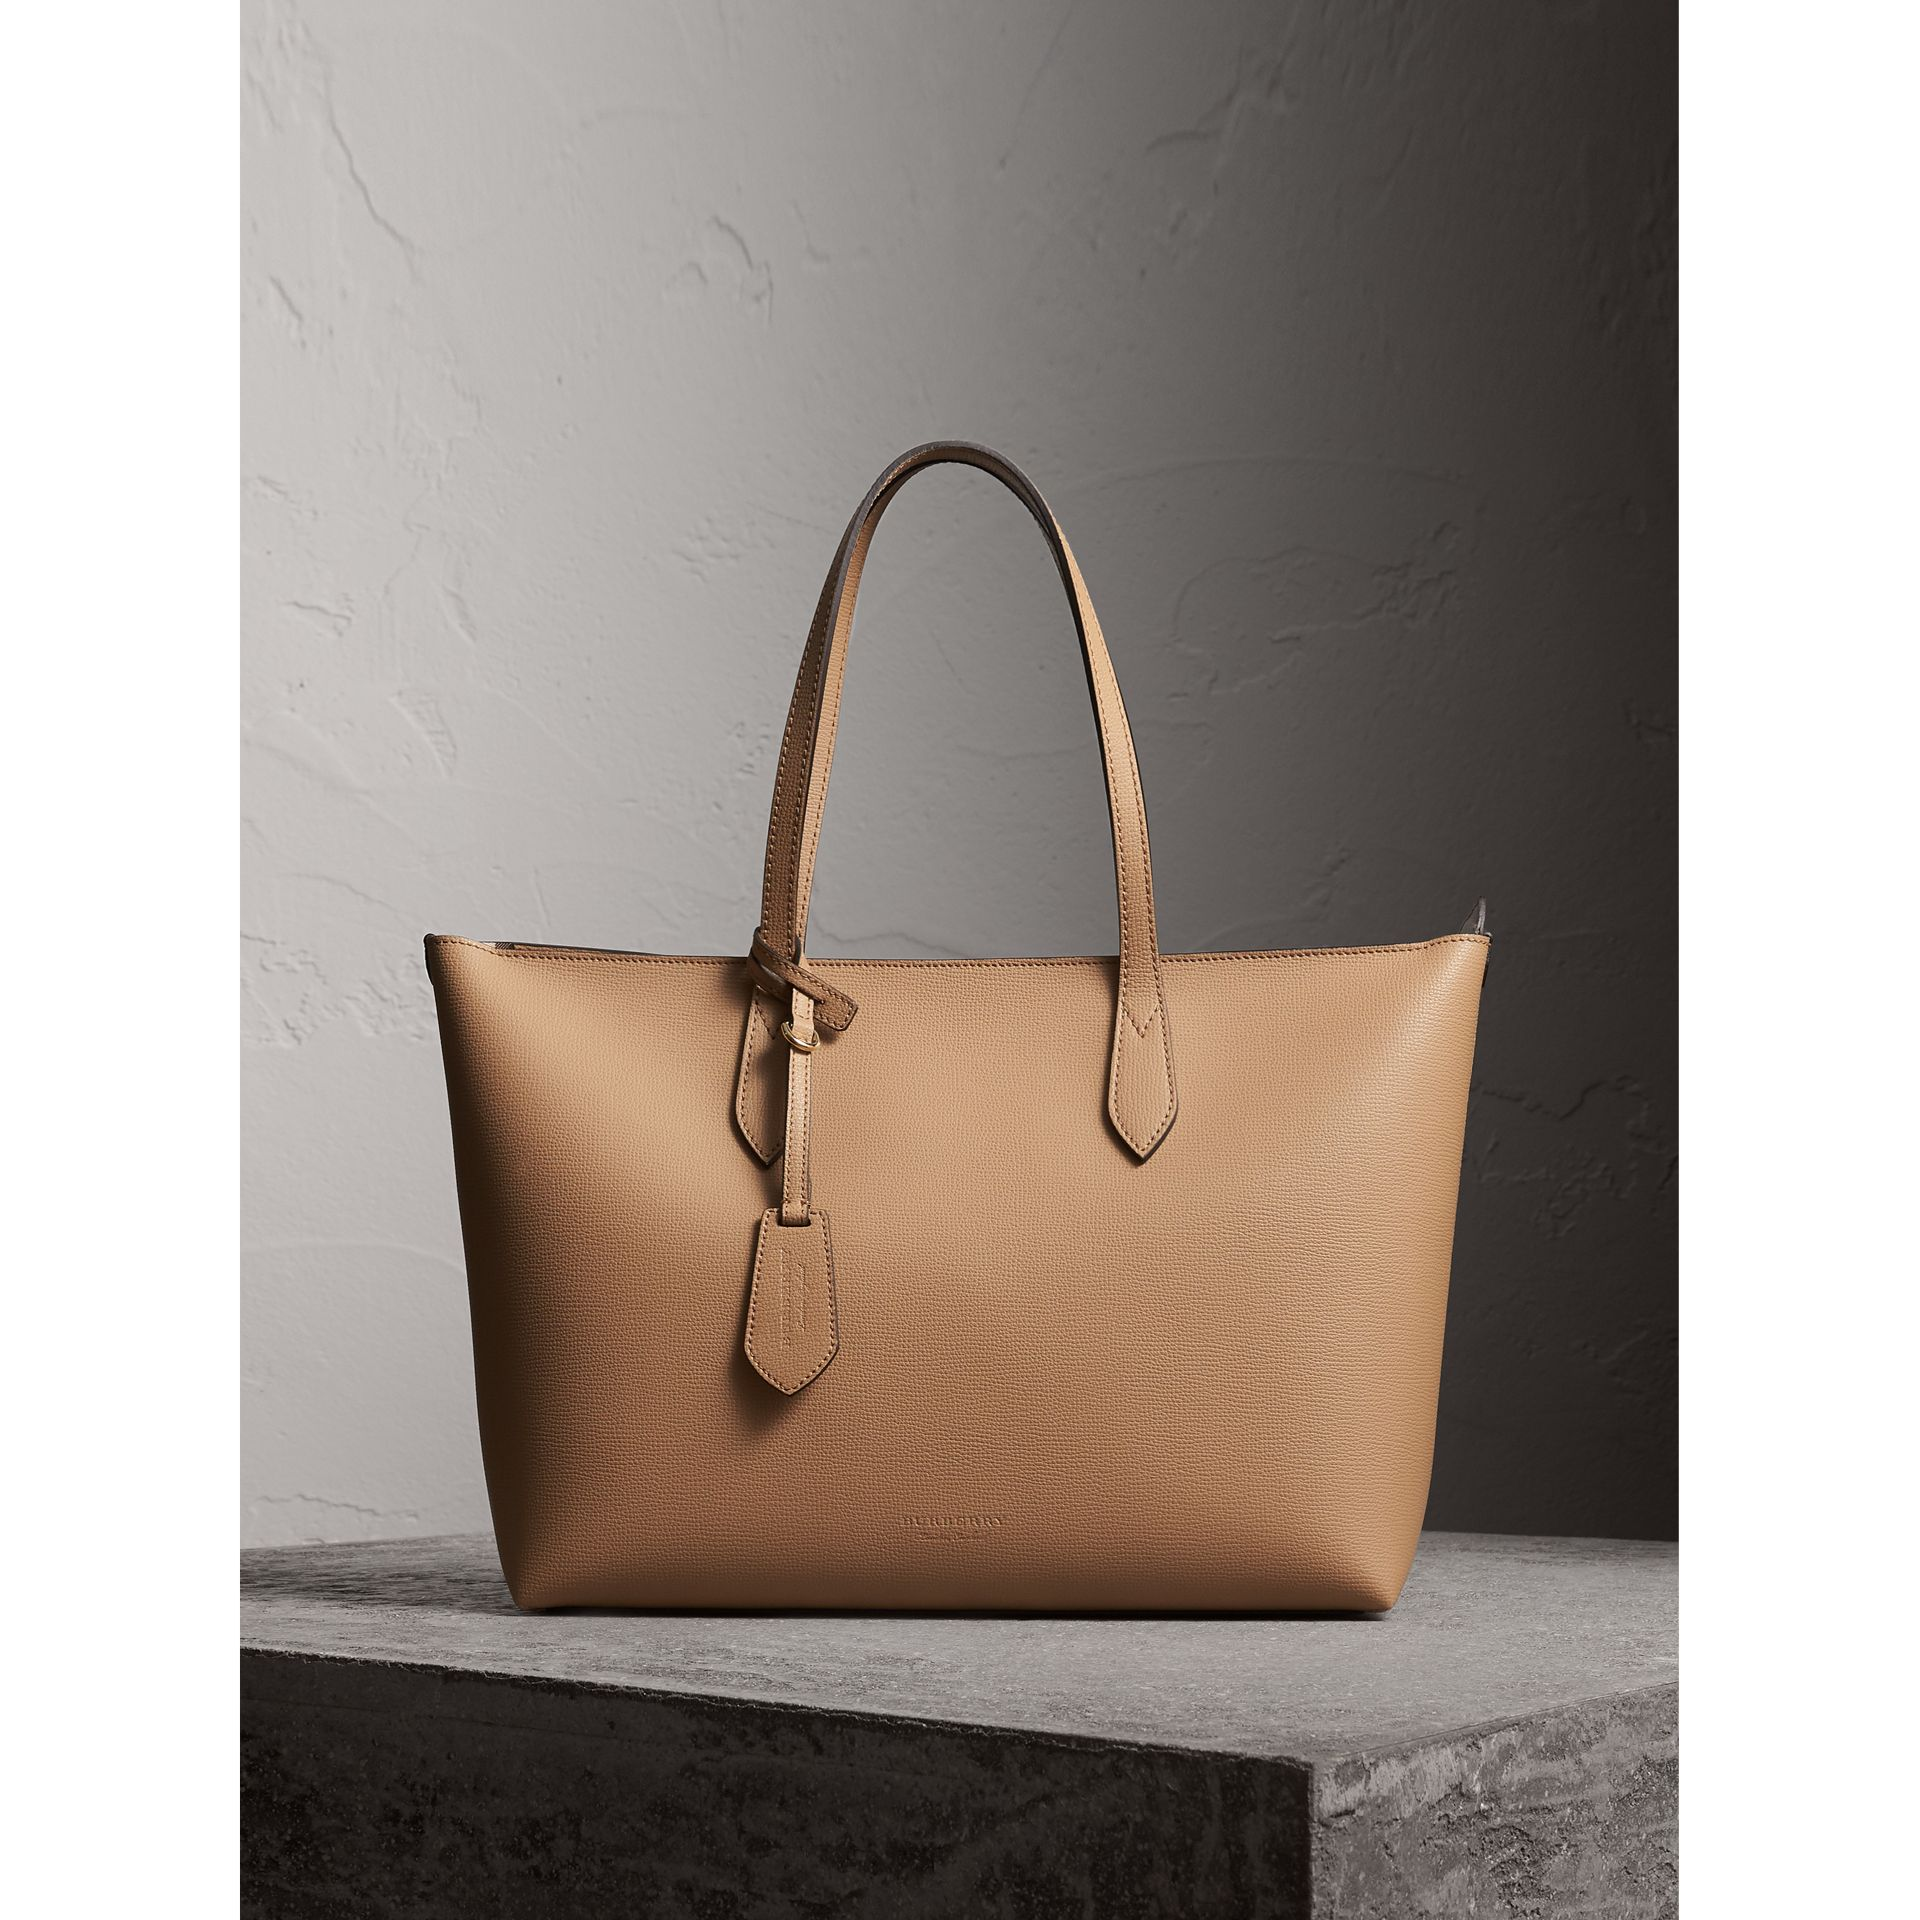 Medium Coated Leather Tote in Mid Camel - Women | Burberry Canada - gallery image 1